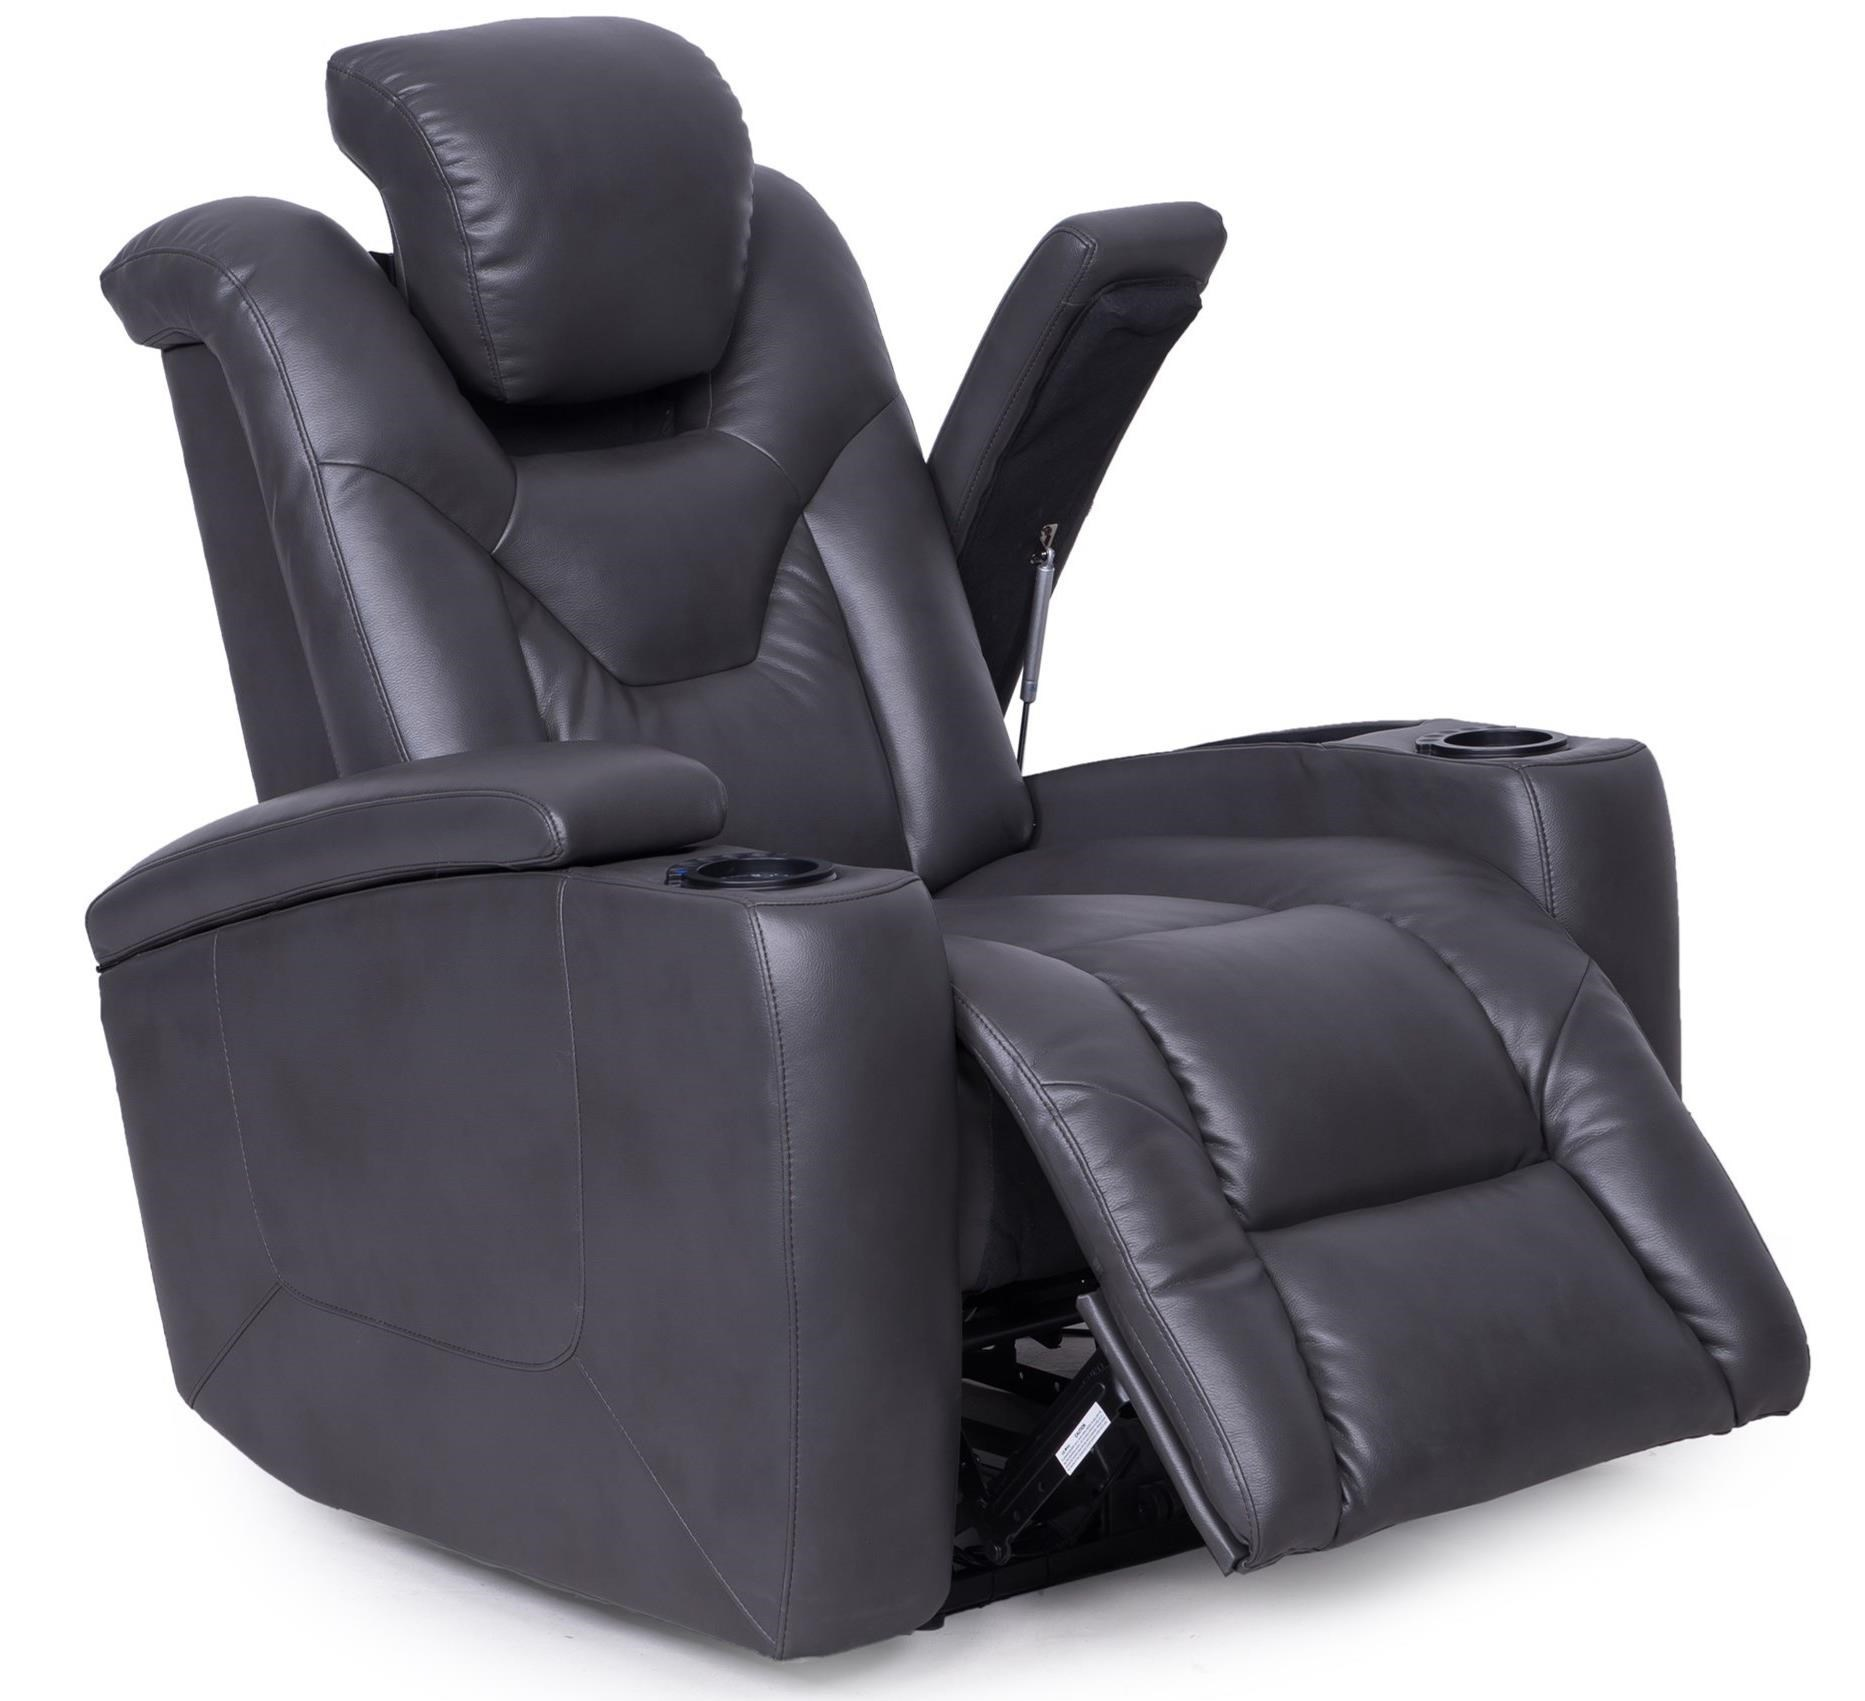 Synergy Home Furnishings 377 Power Recliner with Hidden Storage Compartments  sc 1 st  Zaku0027s Fine Furniture & Synergy Home Furnishings 377 Power Recliner with Hidden Storage ... islam-shia.org